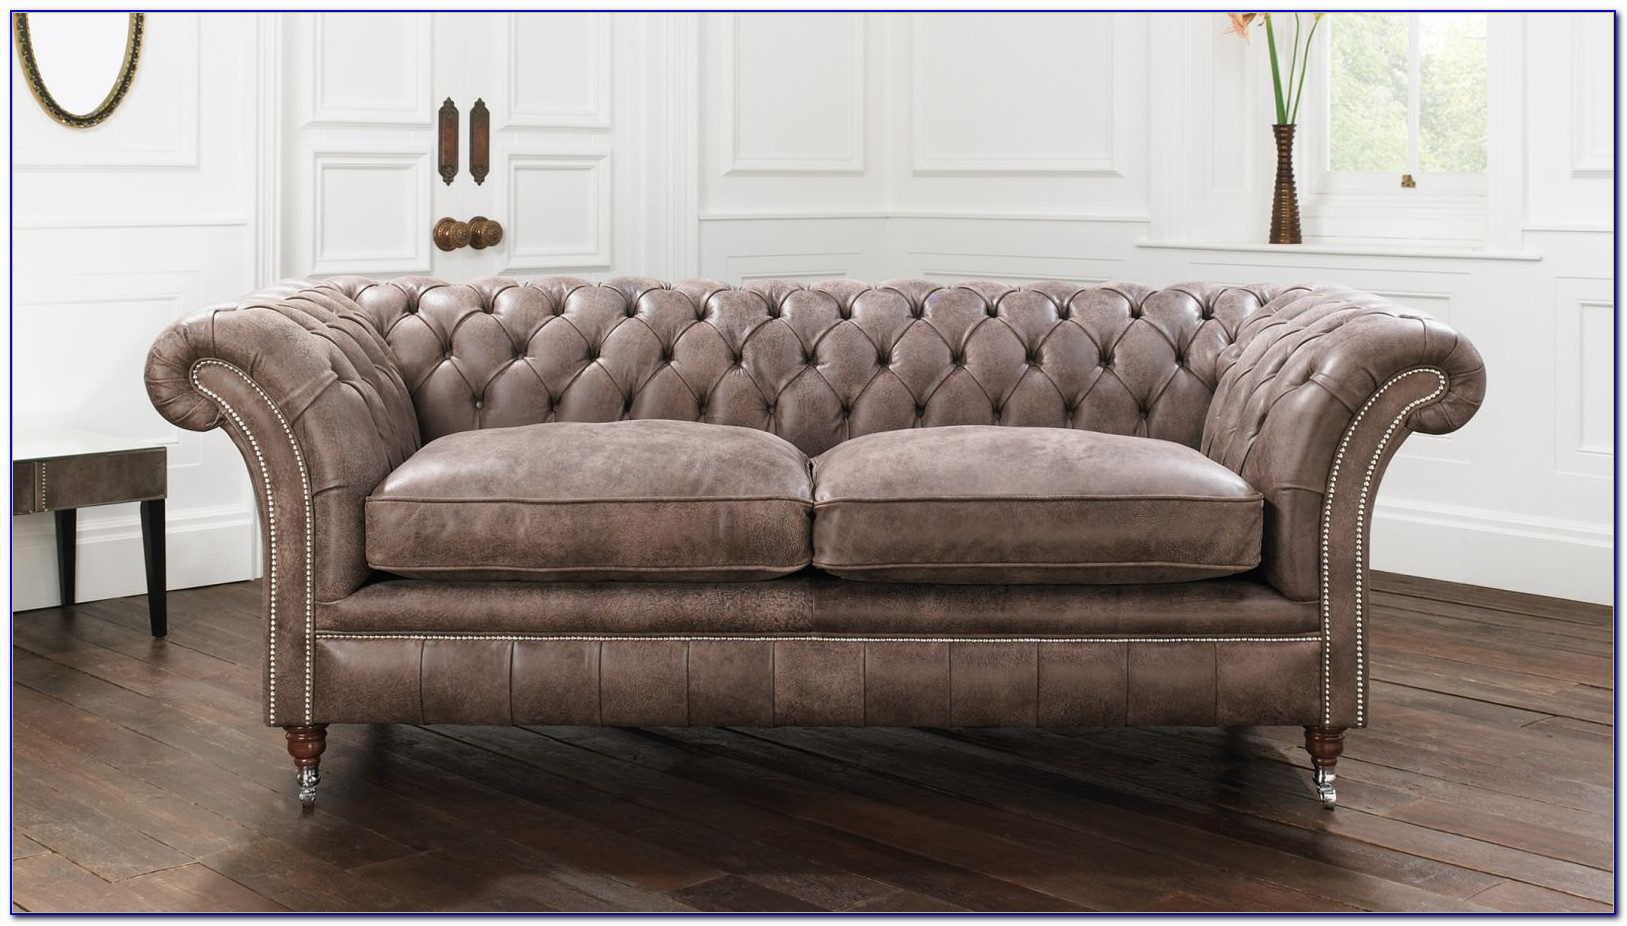 What Is A Real Chesterfield Sofa